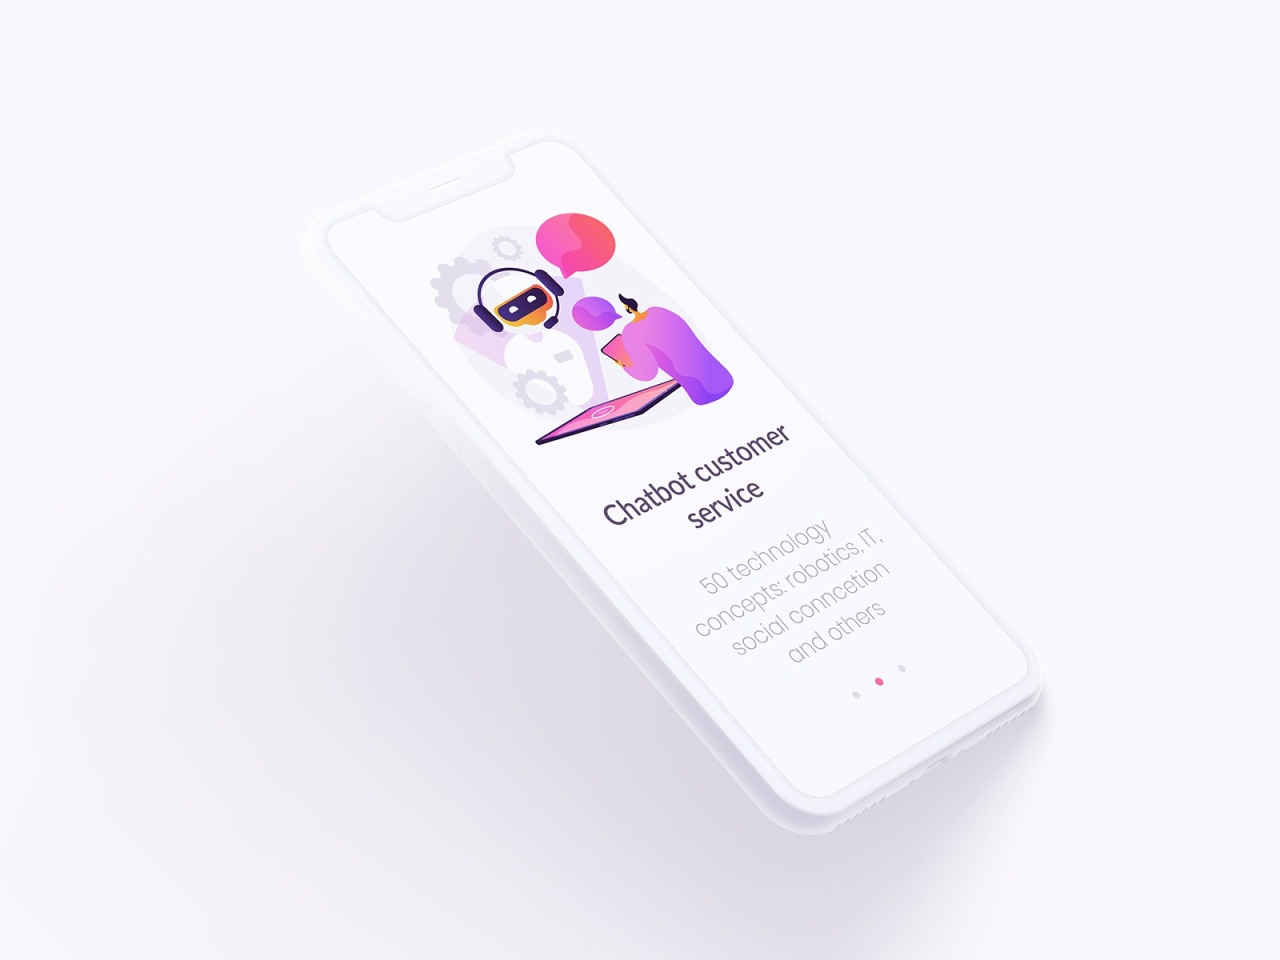 Tech Illustrations For Onboarding Screens by Visual Generation #ui#ux#design drips#interface#character#chatbot#concept#concept illustration#illustration#oboarding#robot#technology#ui design#ui elements#uikits#vector